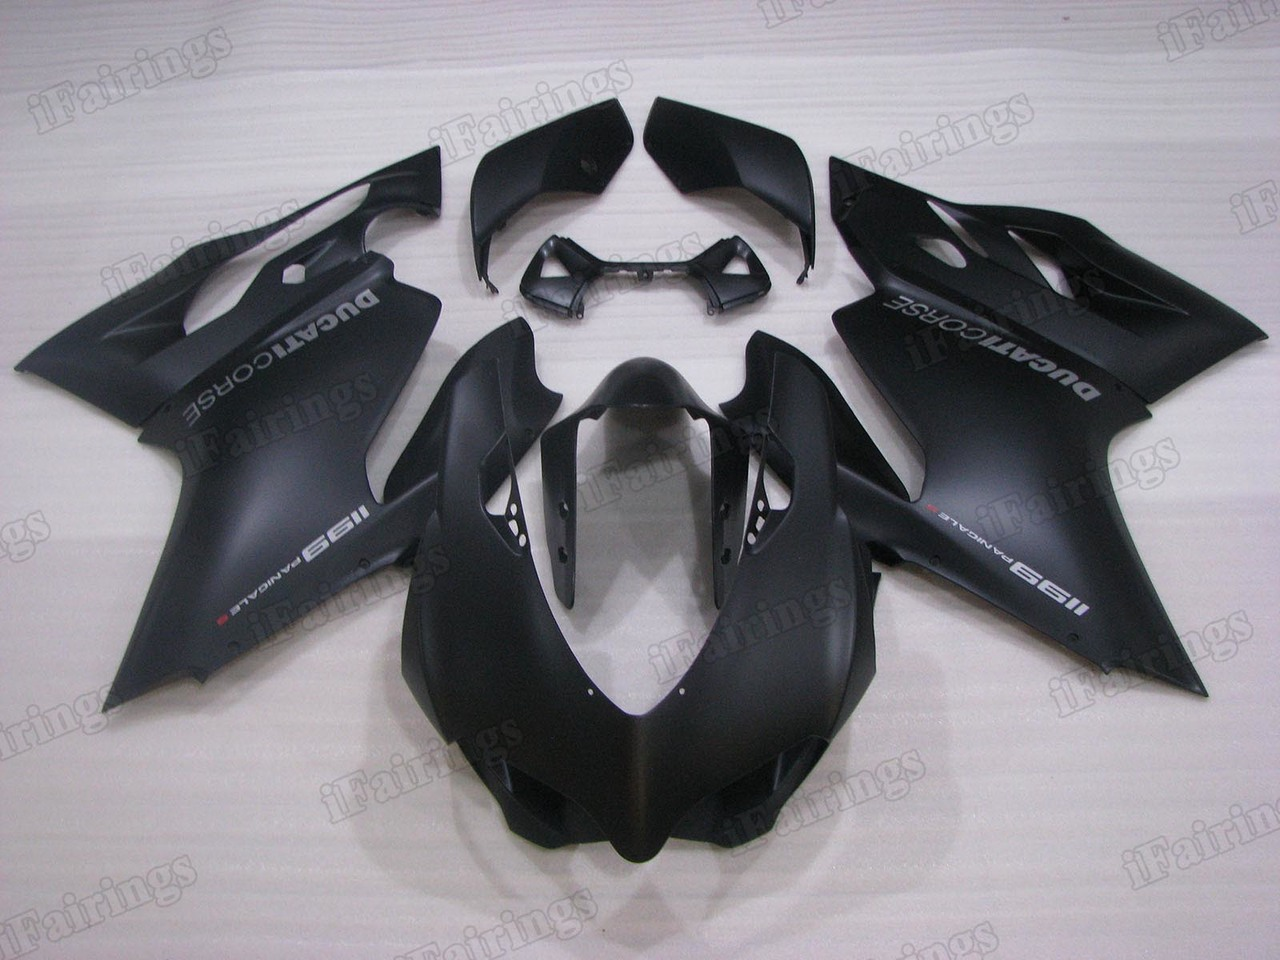 Motorcycle fairings/bodywork for Ducati 899/1199 Panigale matte black color.